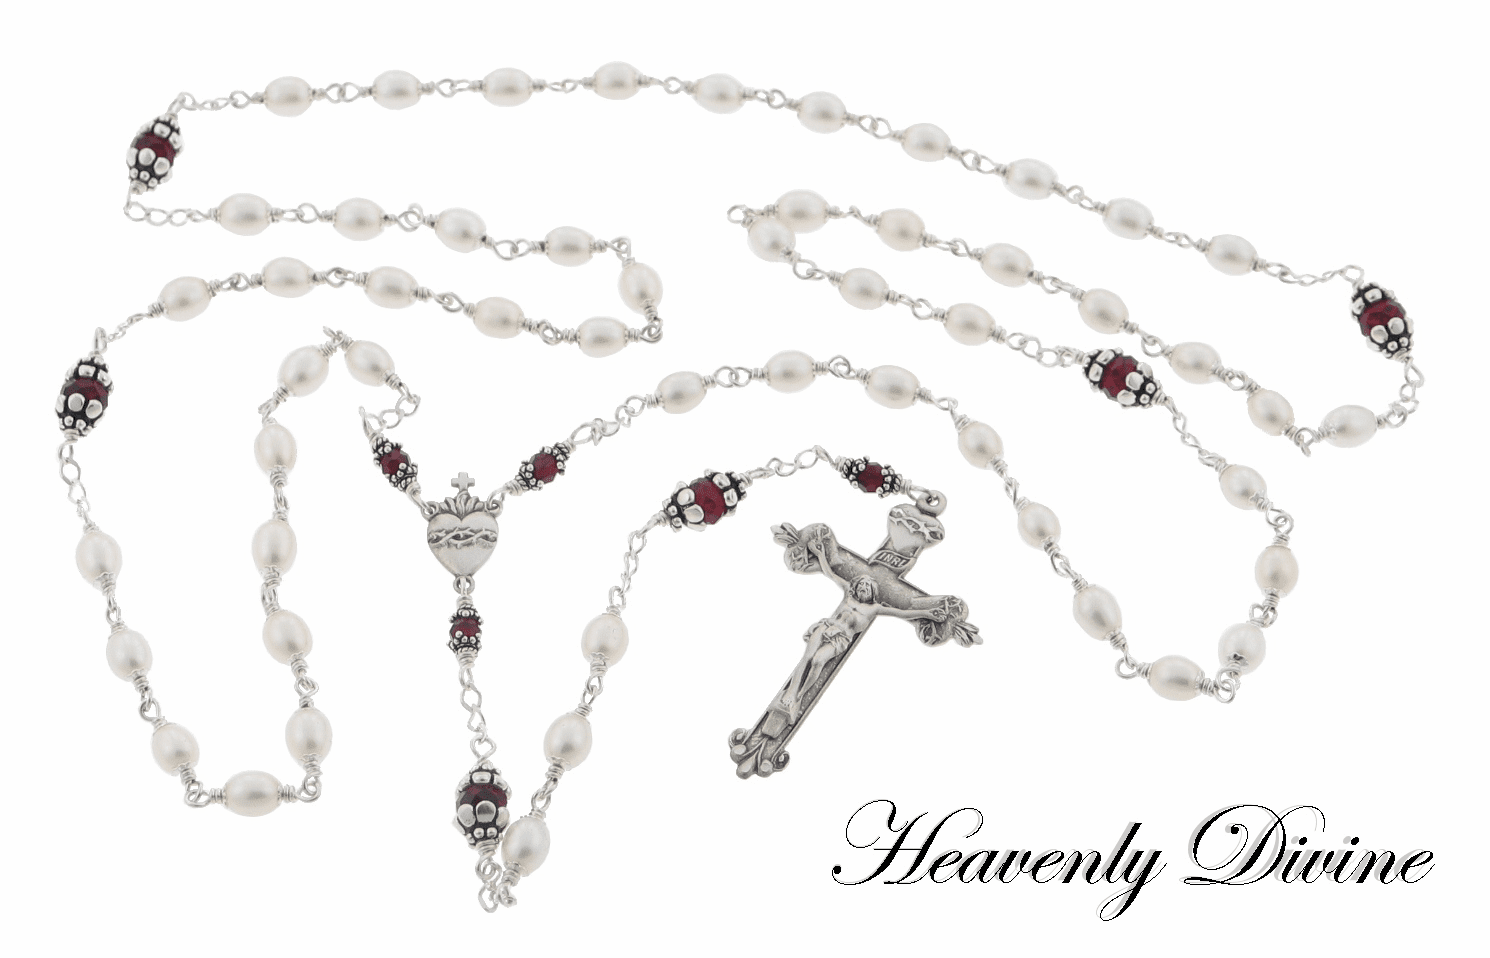 Handmade Pearl & Swarovski Crystal Sacred Heart Rosary by Heavenly Divine